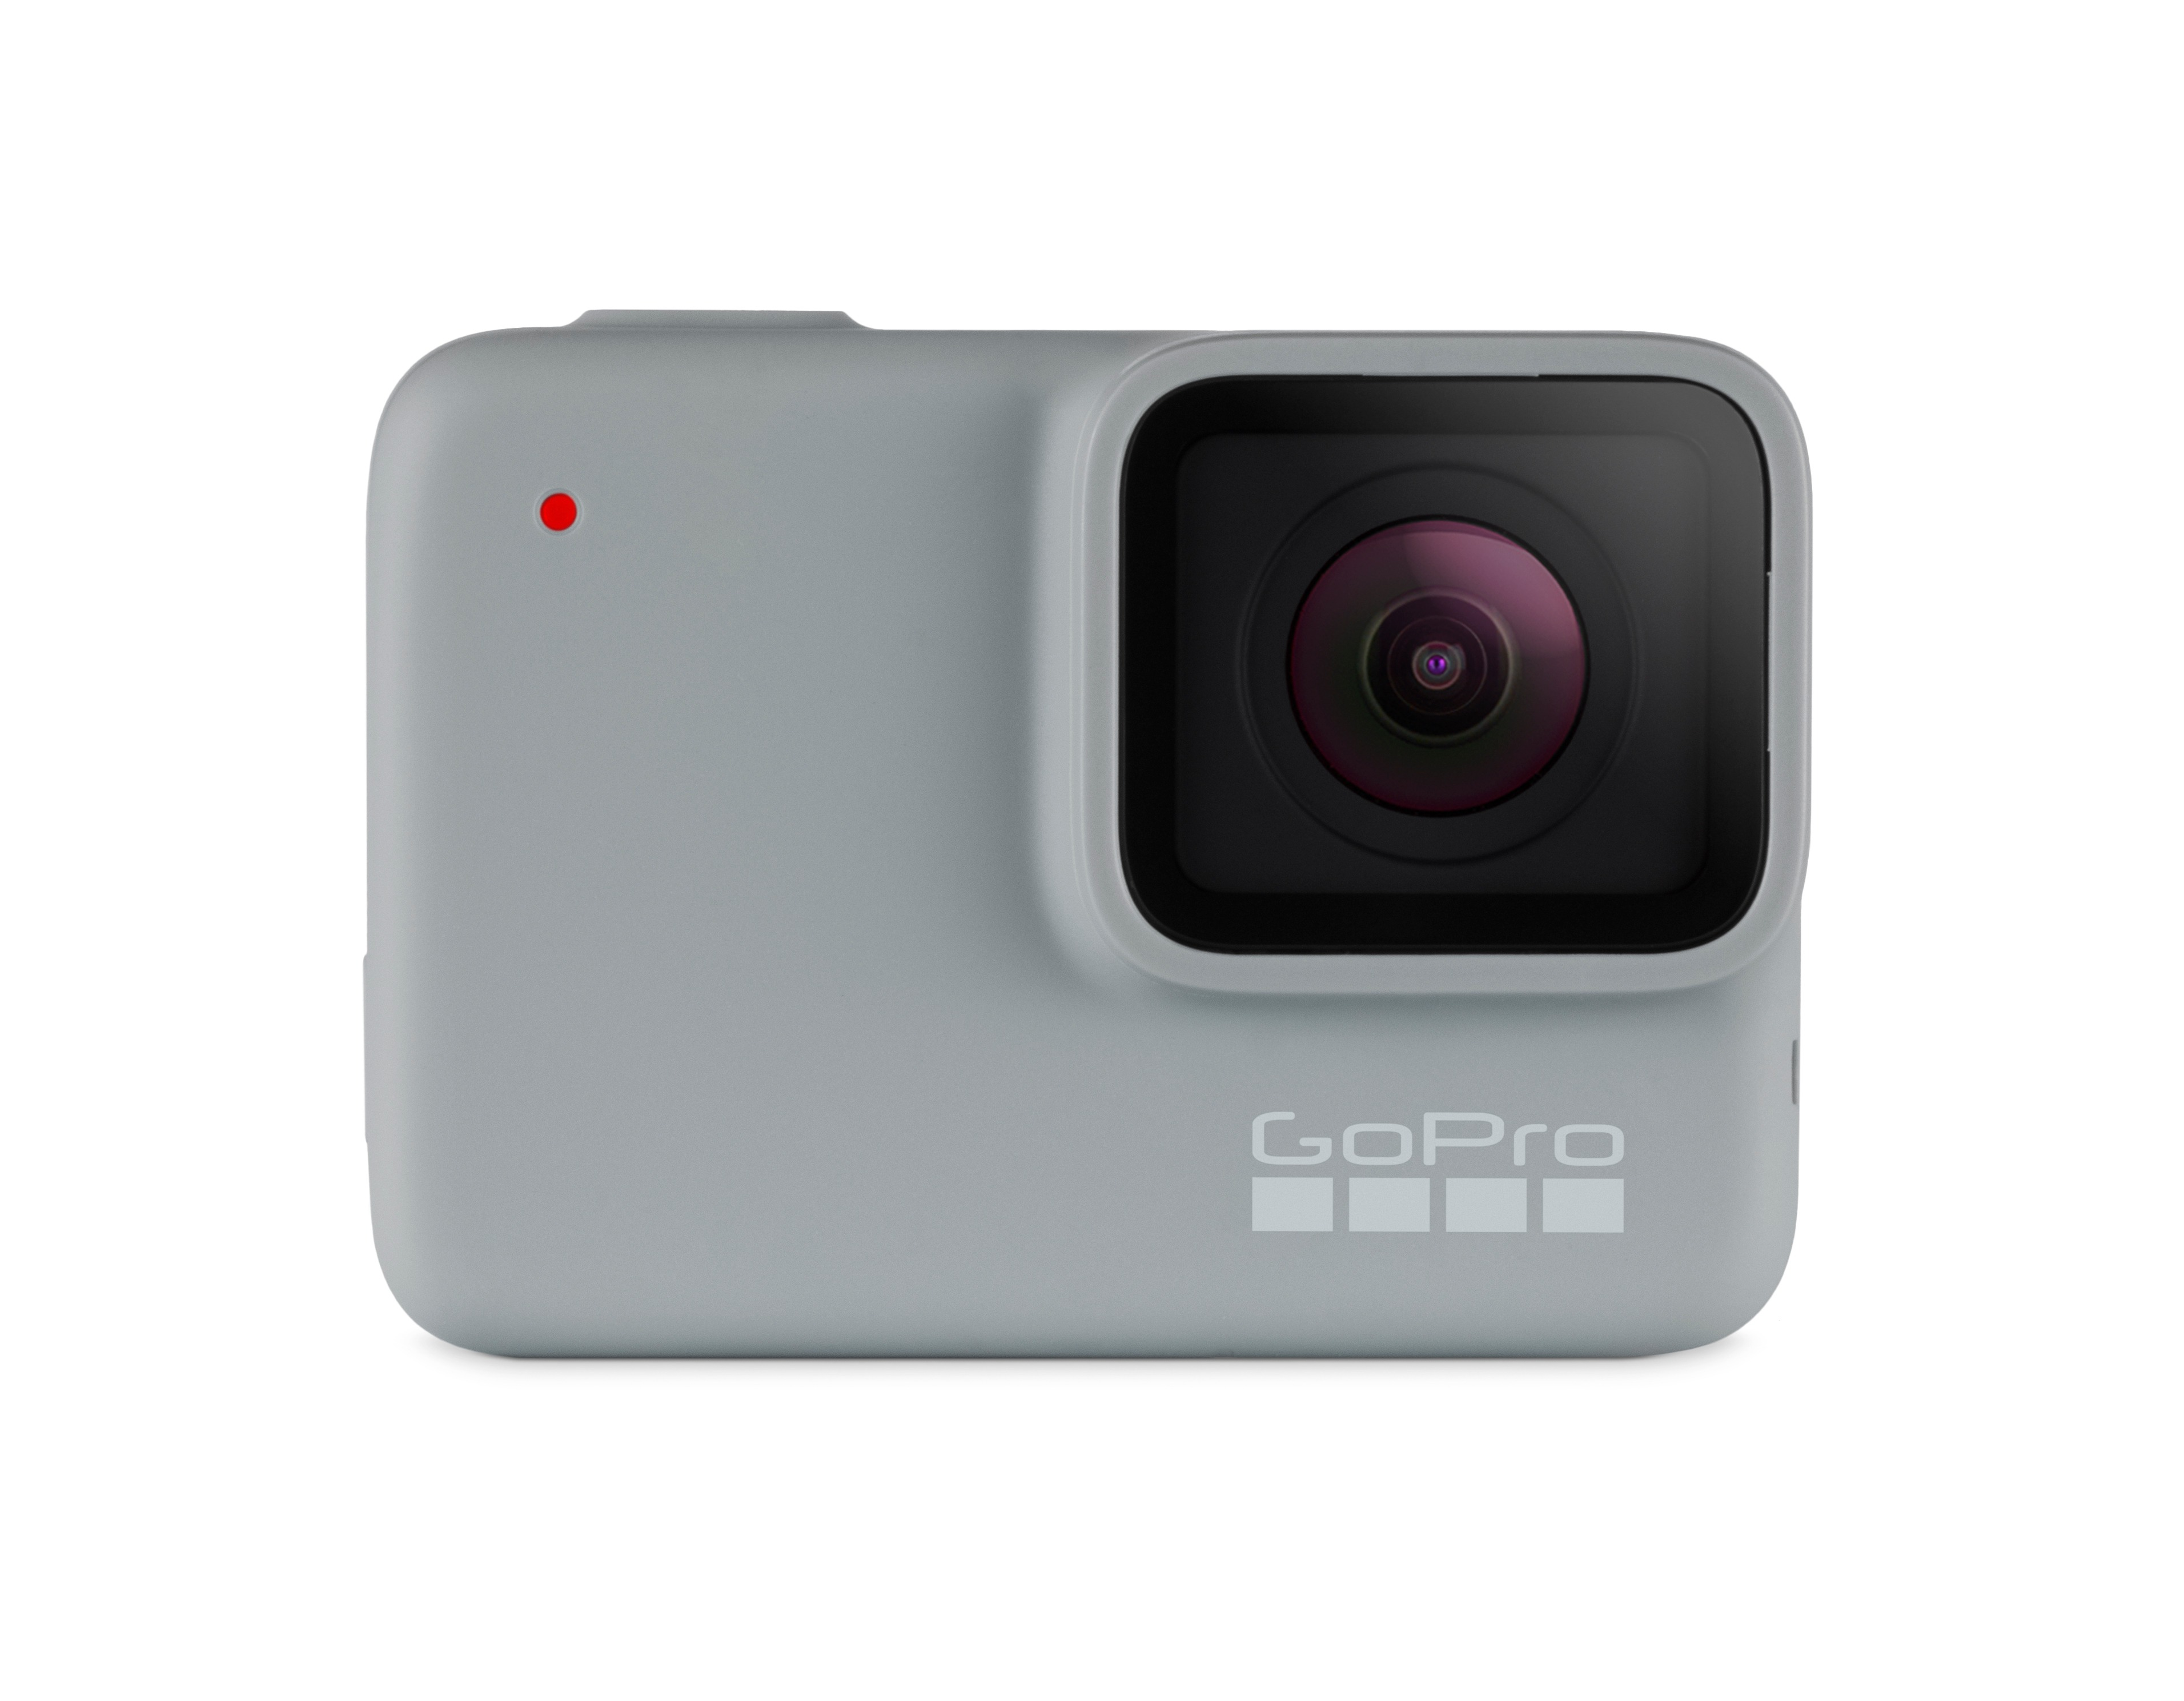 gray GoPro camera with black lens